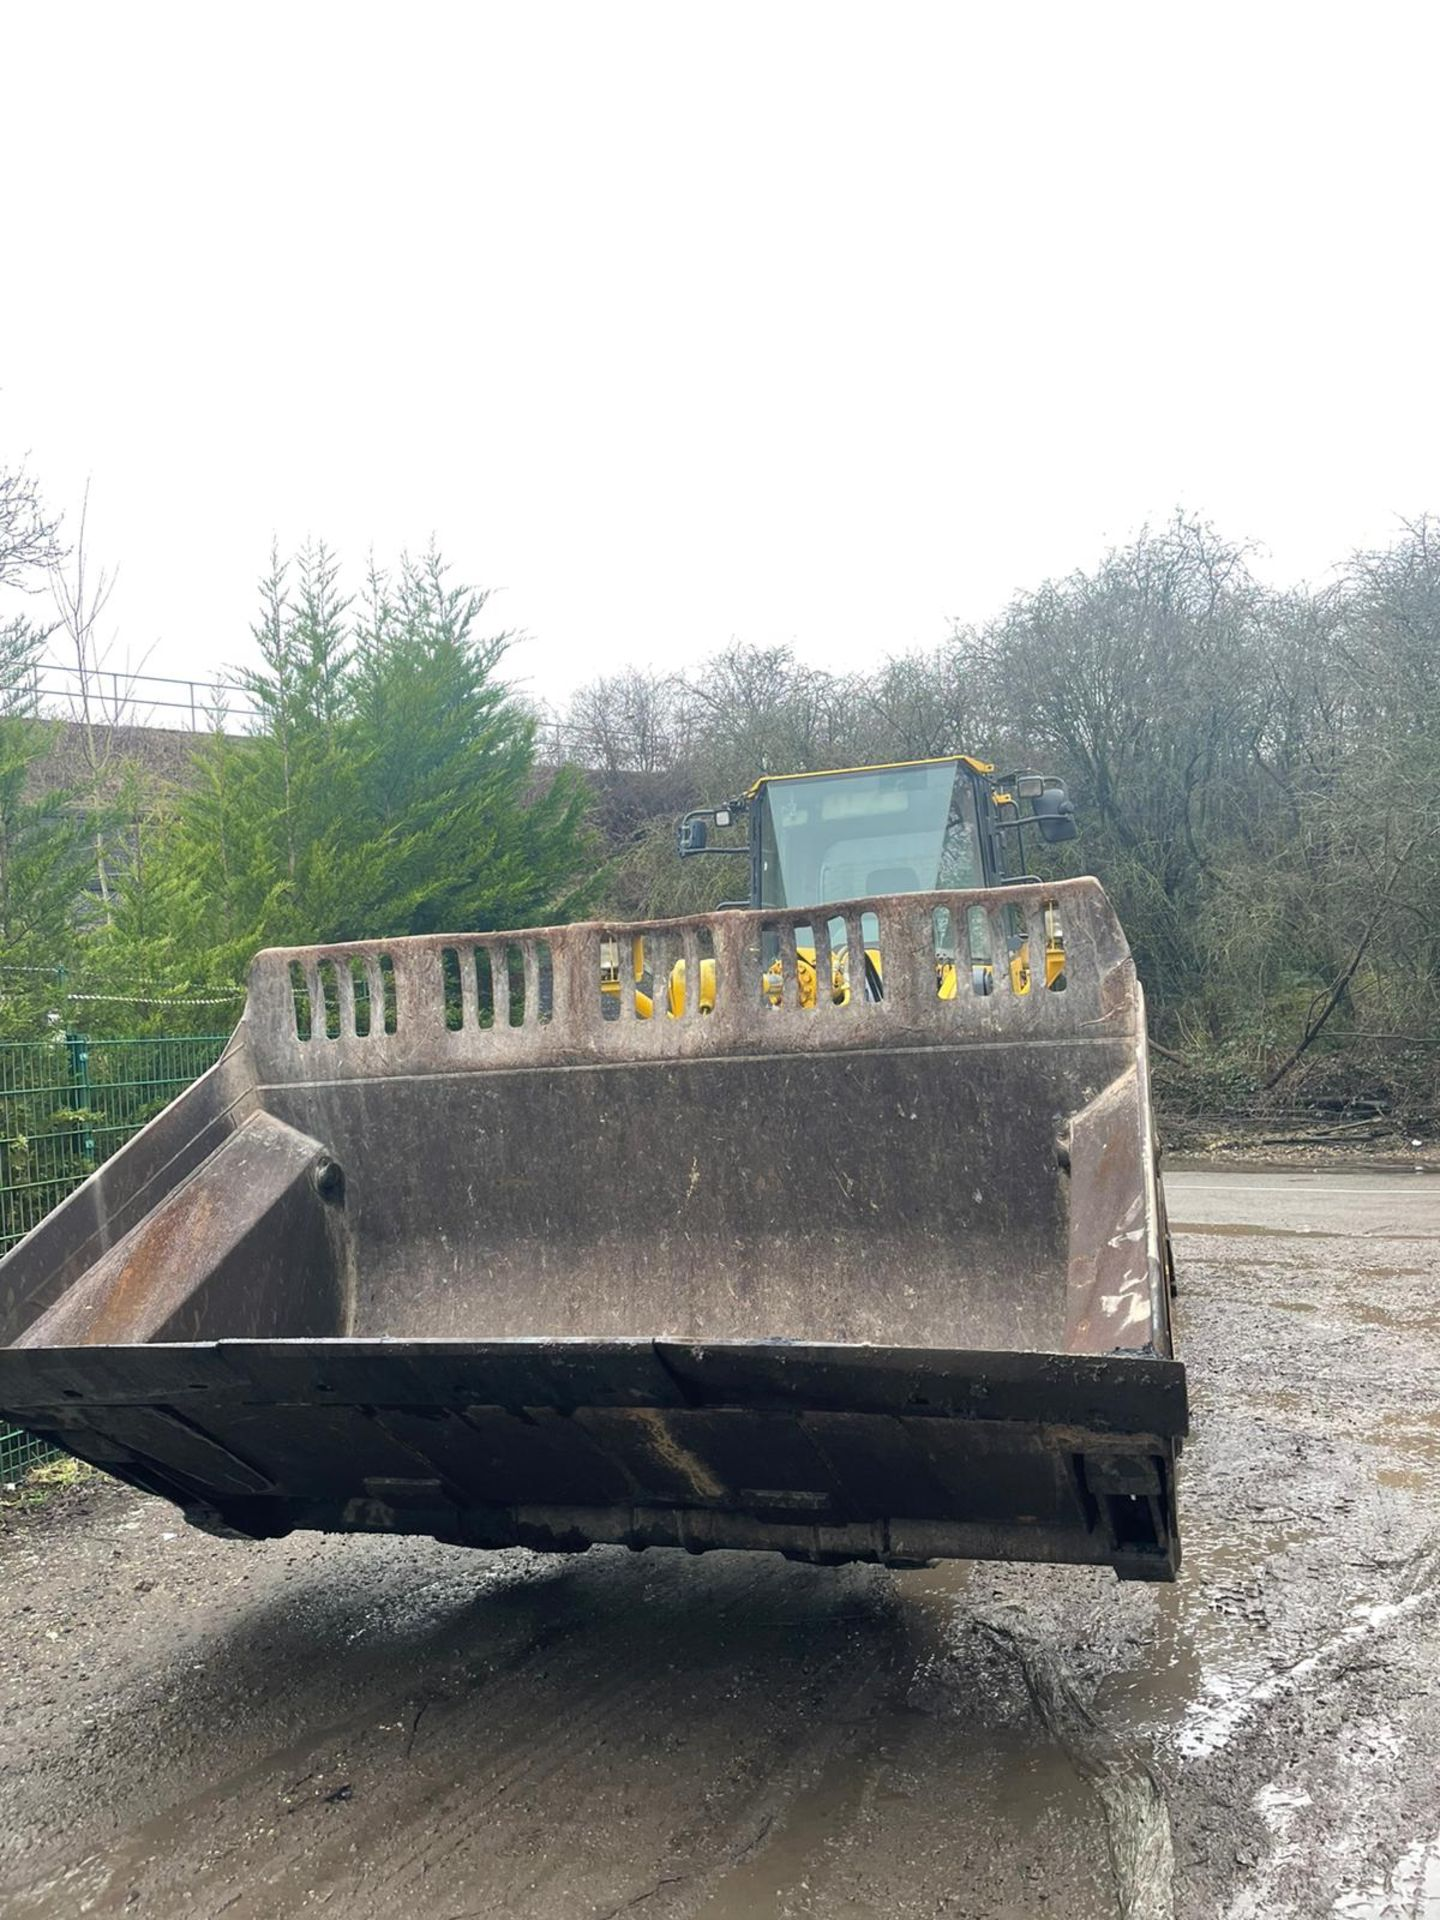 KOMATSU WA430 LOADING SHOVEL, HIGH TIP BUCKET, AUTO GREASING, SOLID TYRES, YEAR 2009 *PLUS VAT* - Image 7 of 8